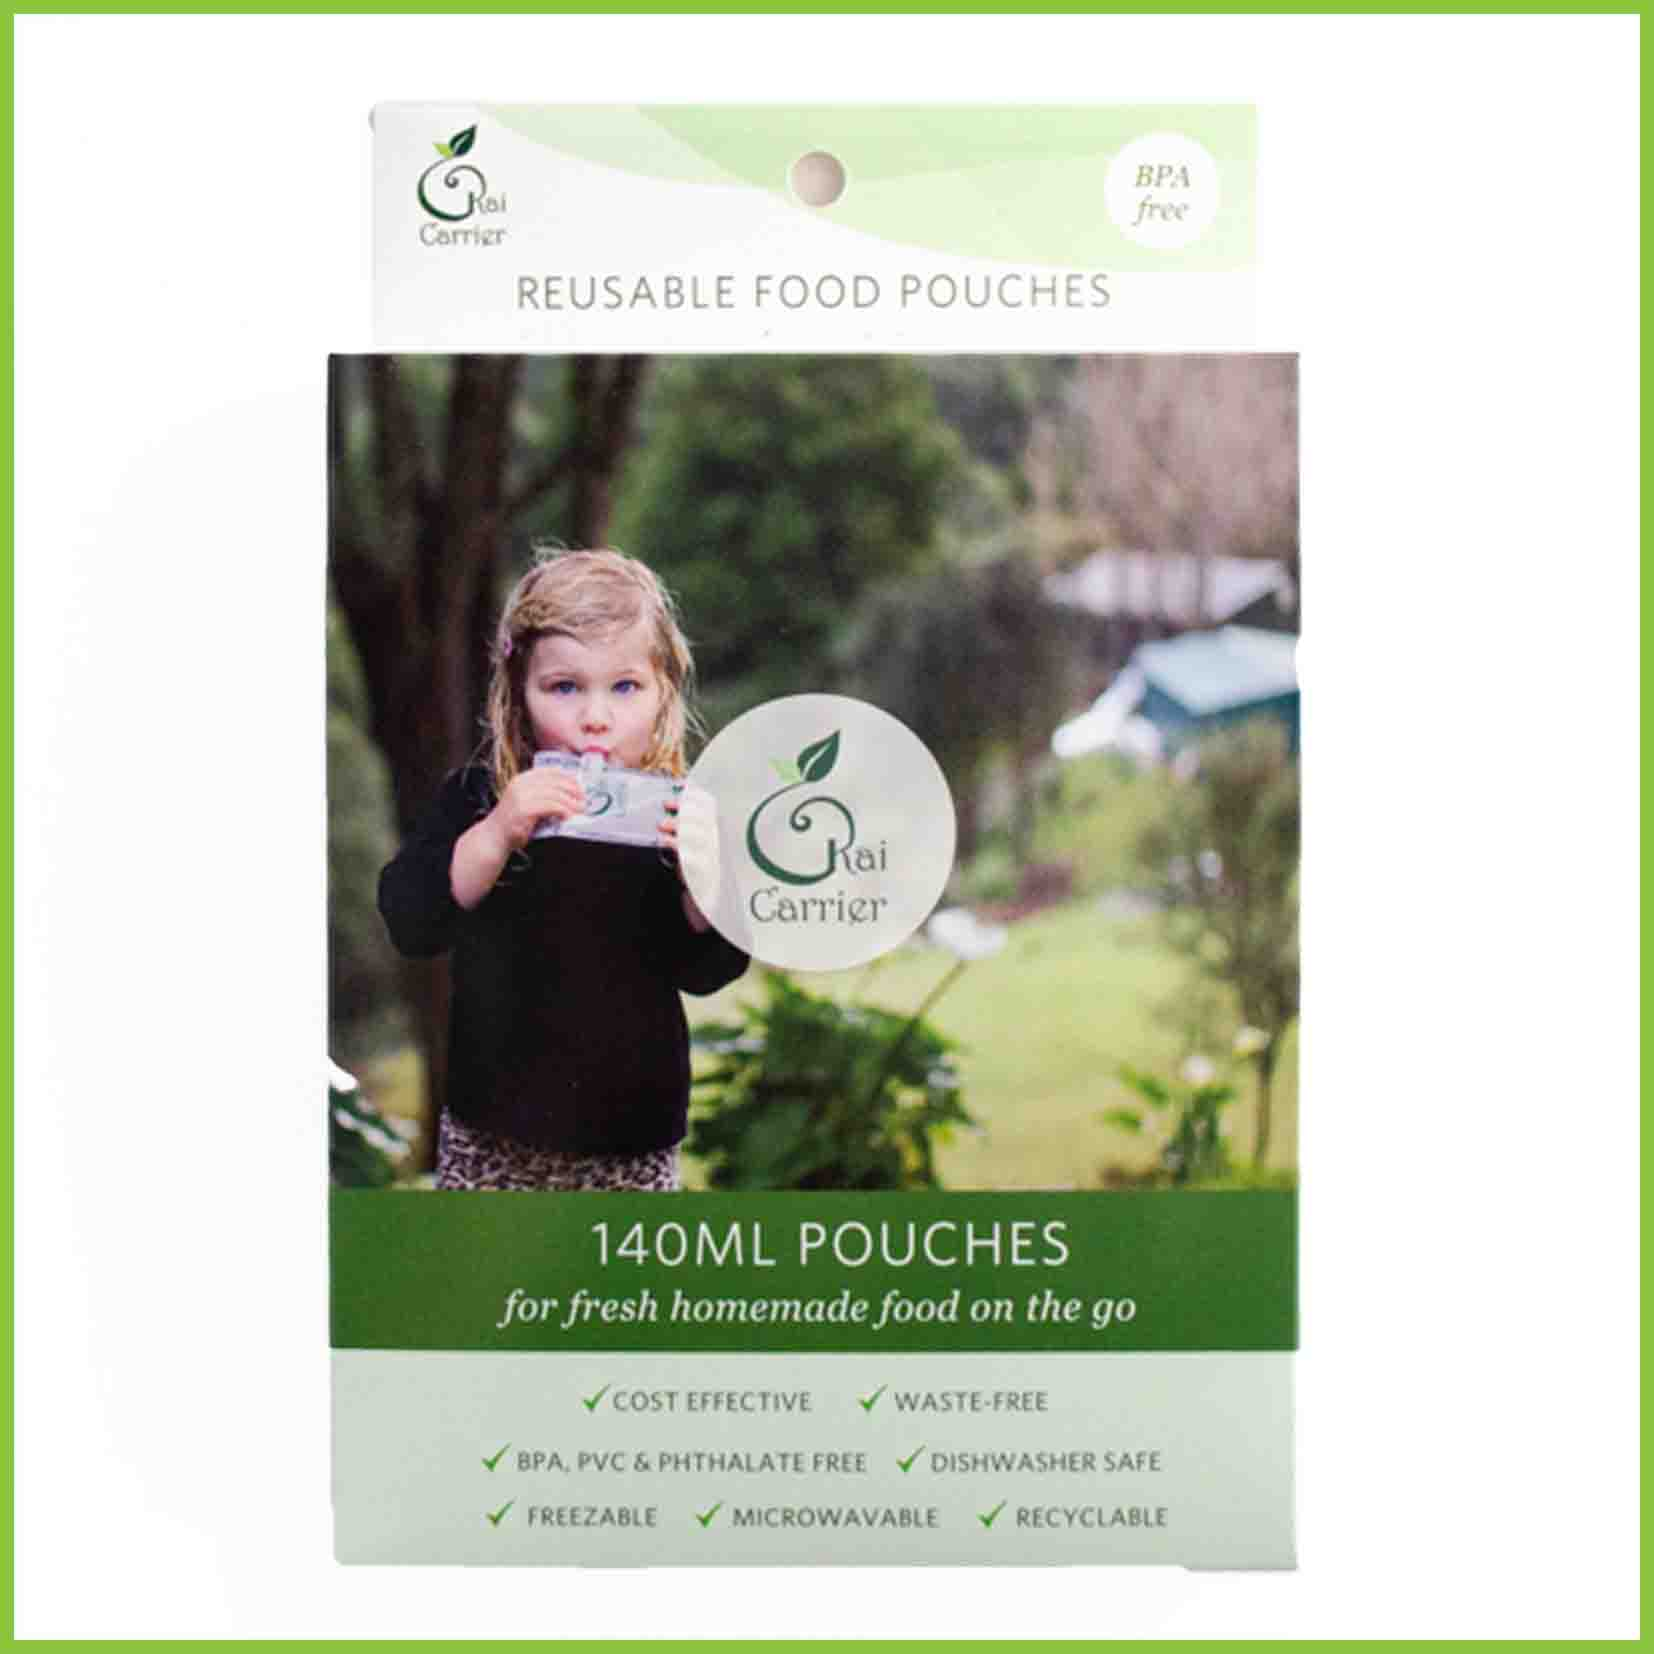 Kai Carrier baby food pouches packaging.